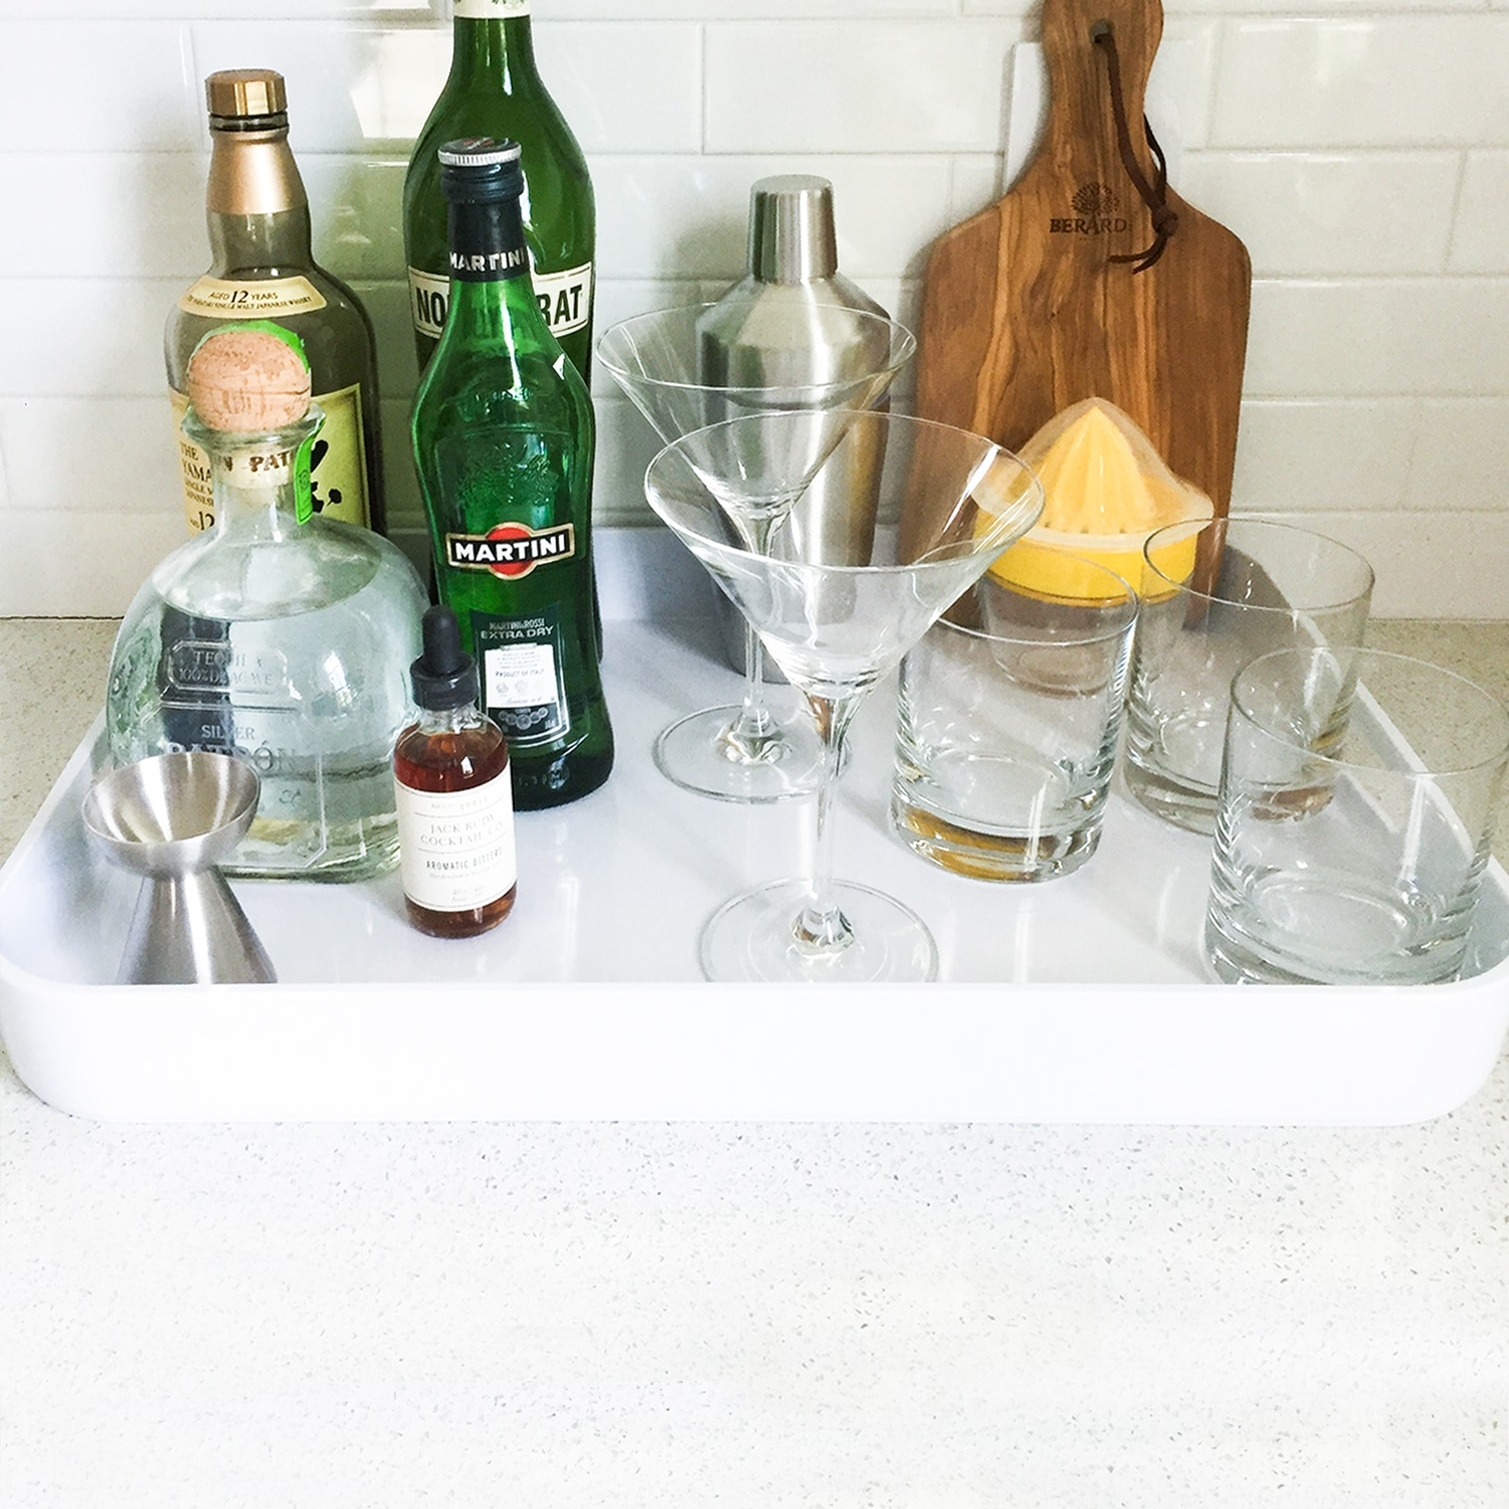 Cocktail crush – Blog by Darci Hether New York